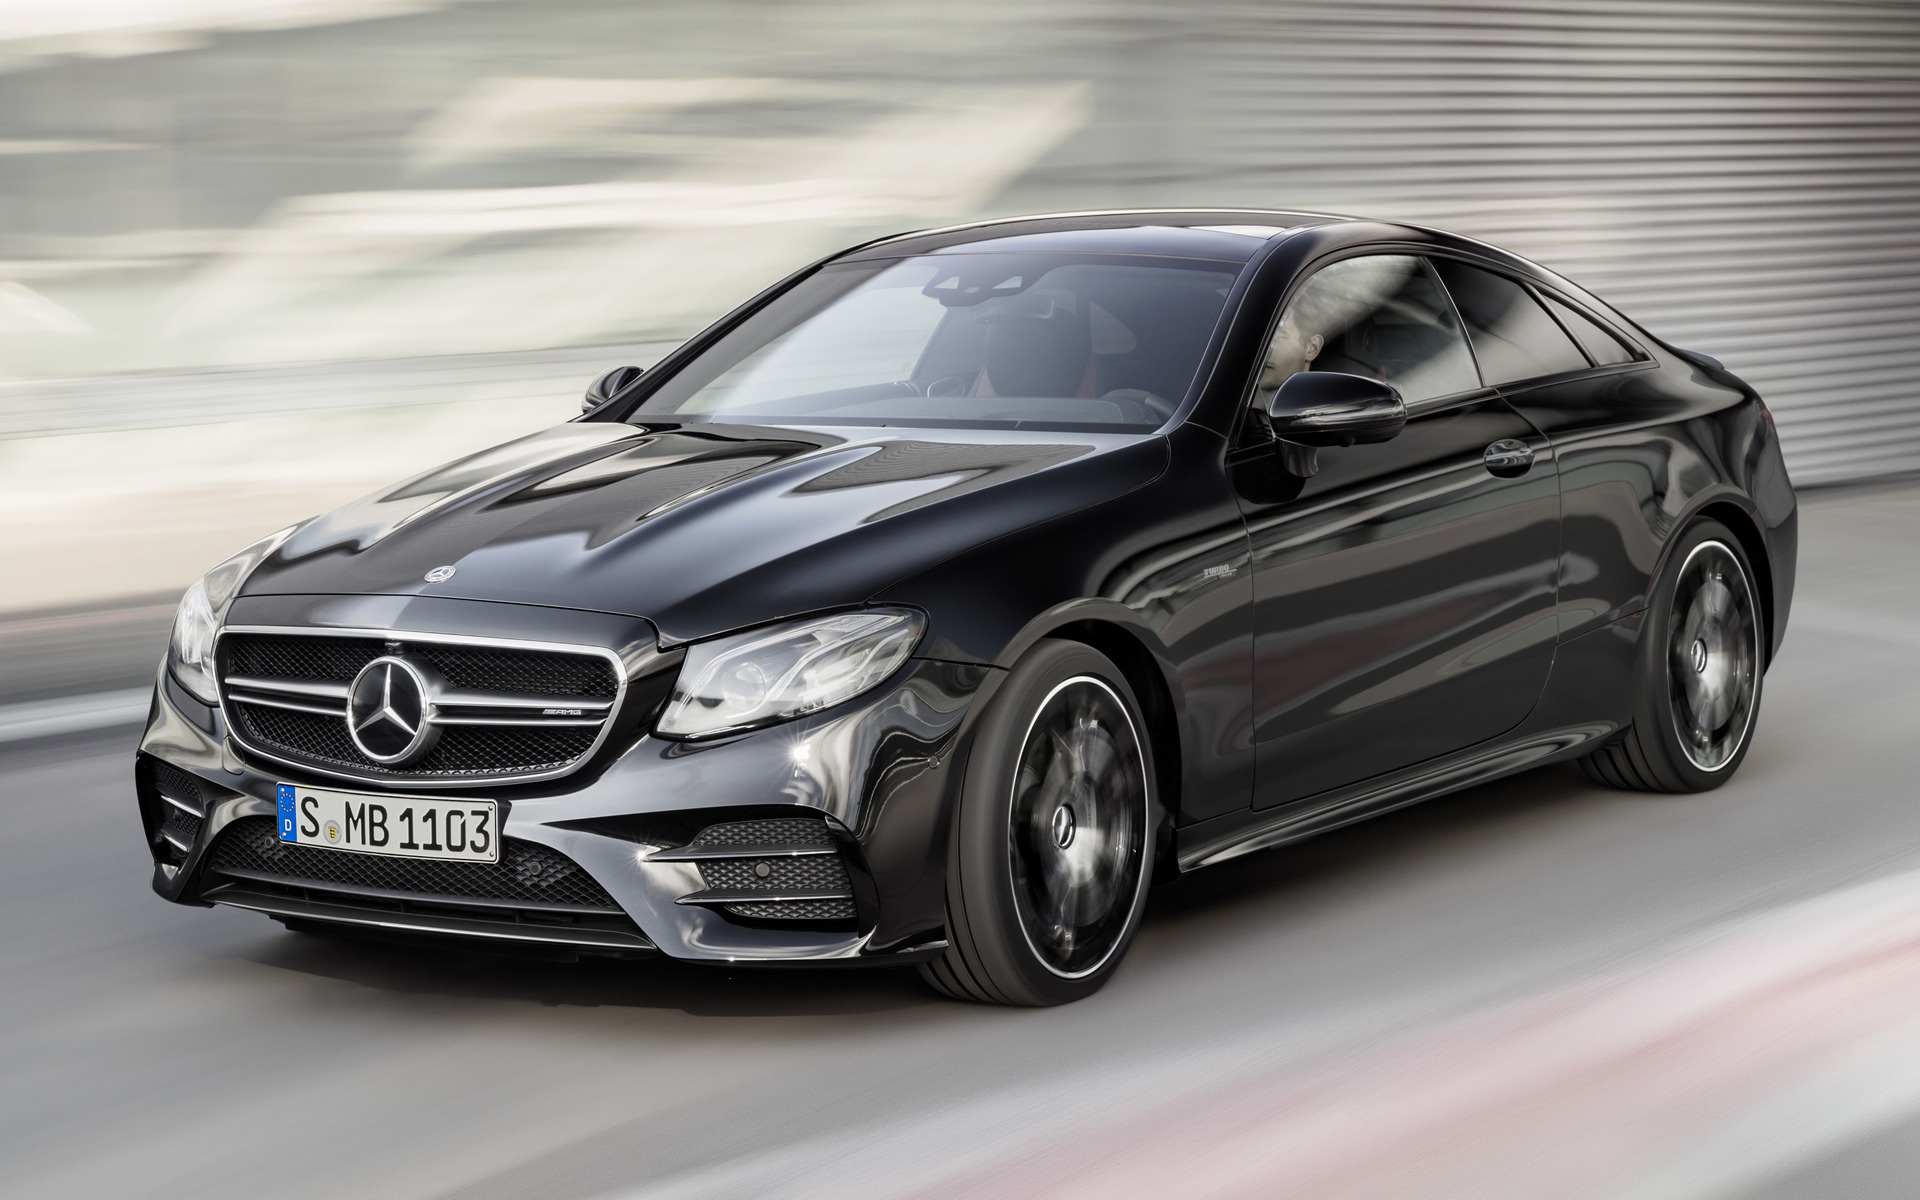 Mercedes Benz S63 Amg >> 2018 Mercedes-AMG E 53 Coupe - Wallpapers and HD Images ...